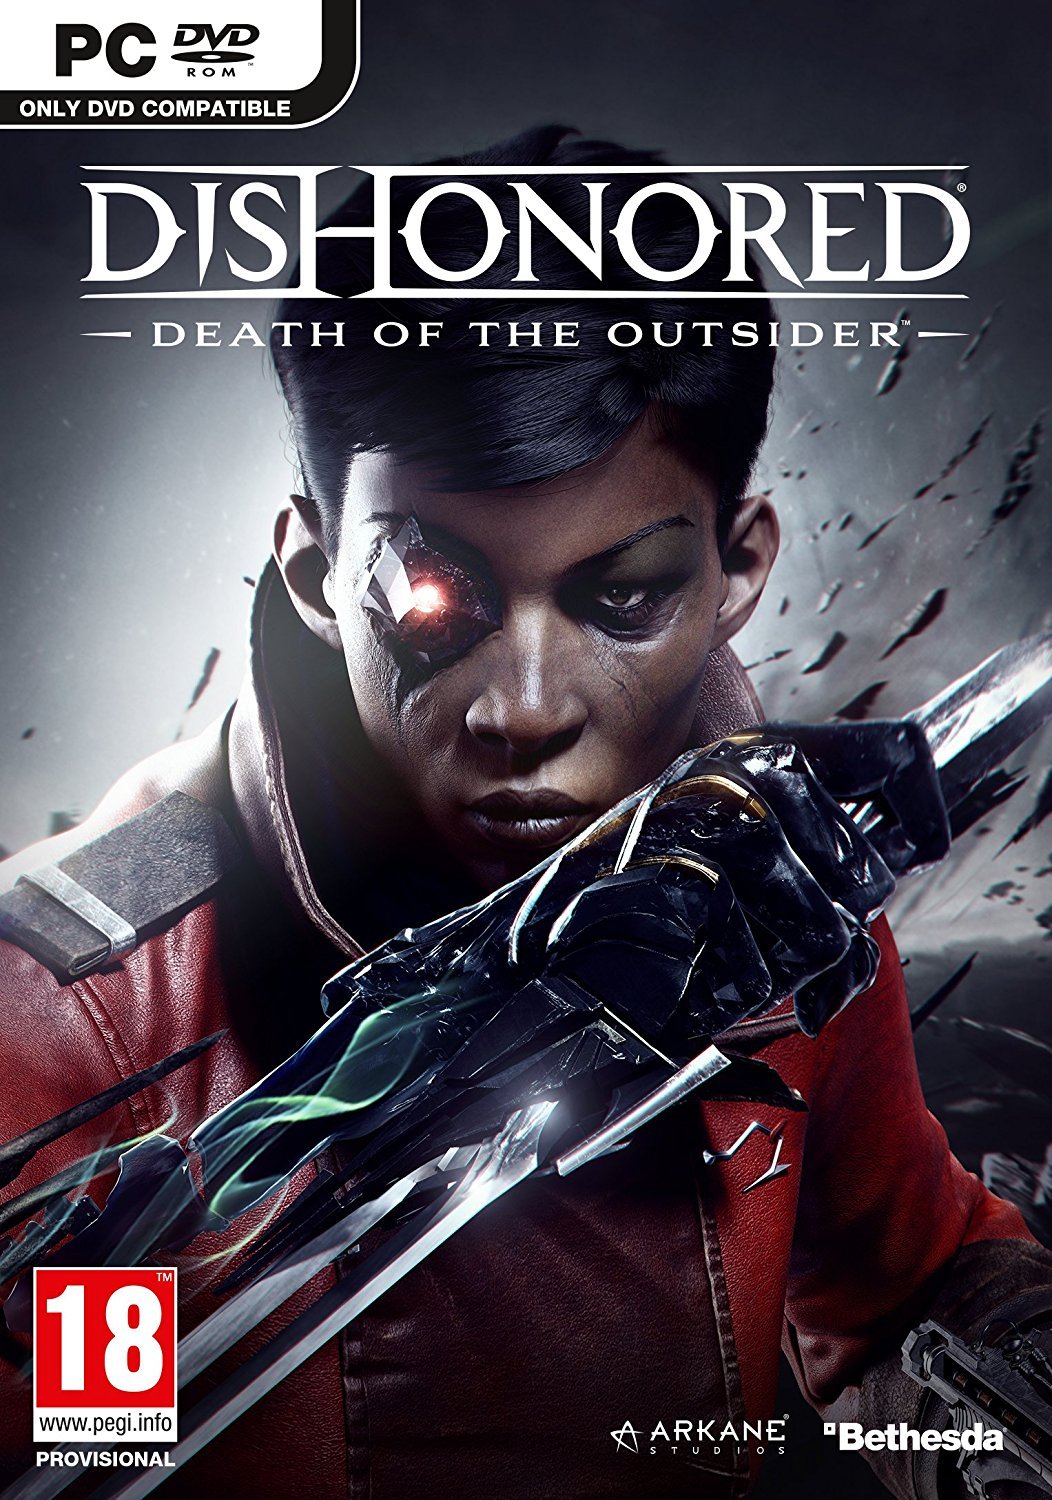 https://img5.downloadha.com/hosein/Game/September%202017/15/Dishonored-Death-of-the-Outsider-pc-cover-large.jpg